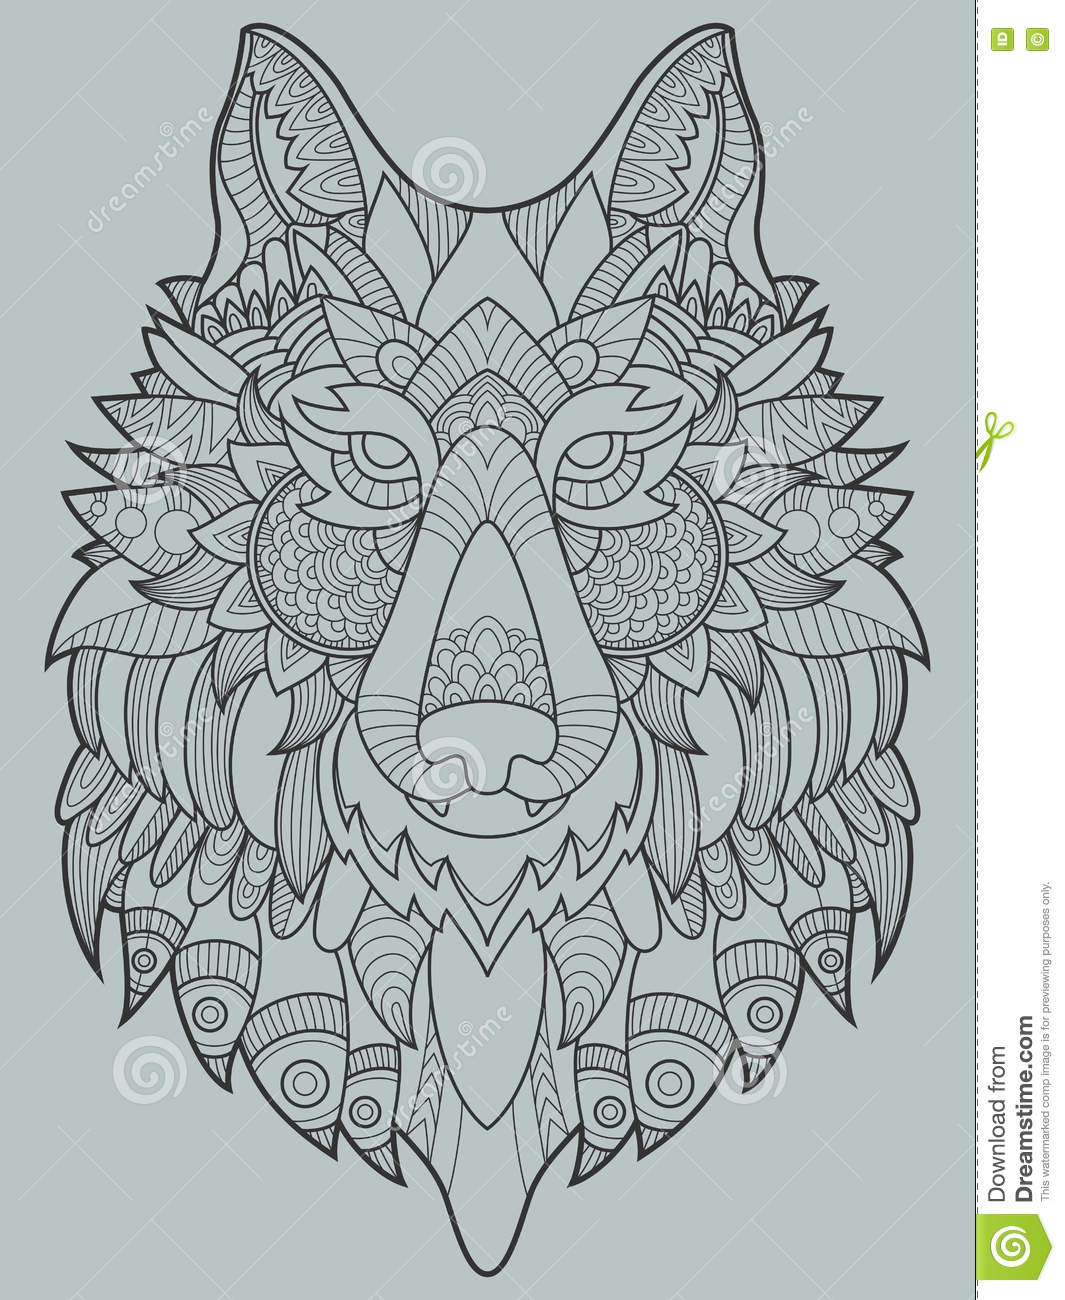 wolf coloring book for adults vector illustration stock vector